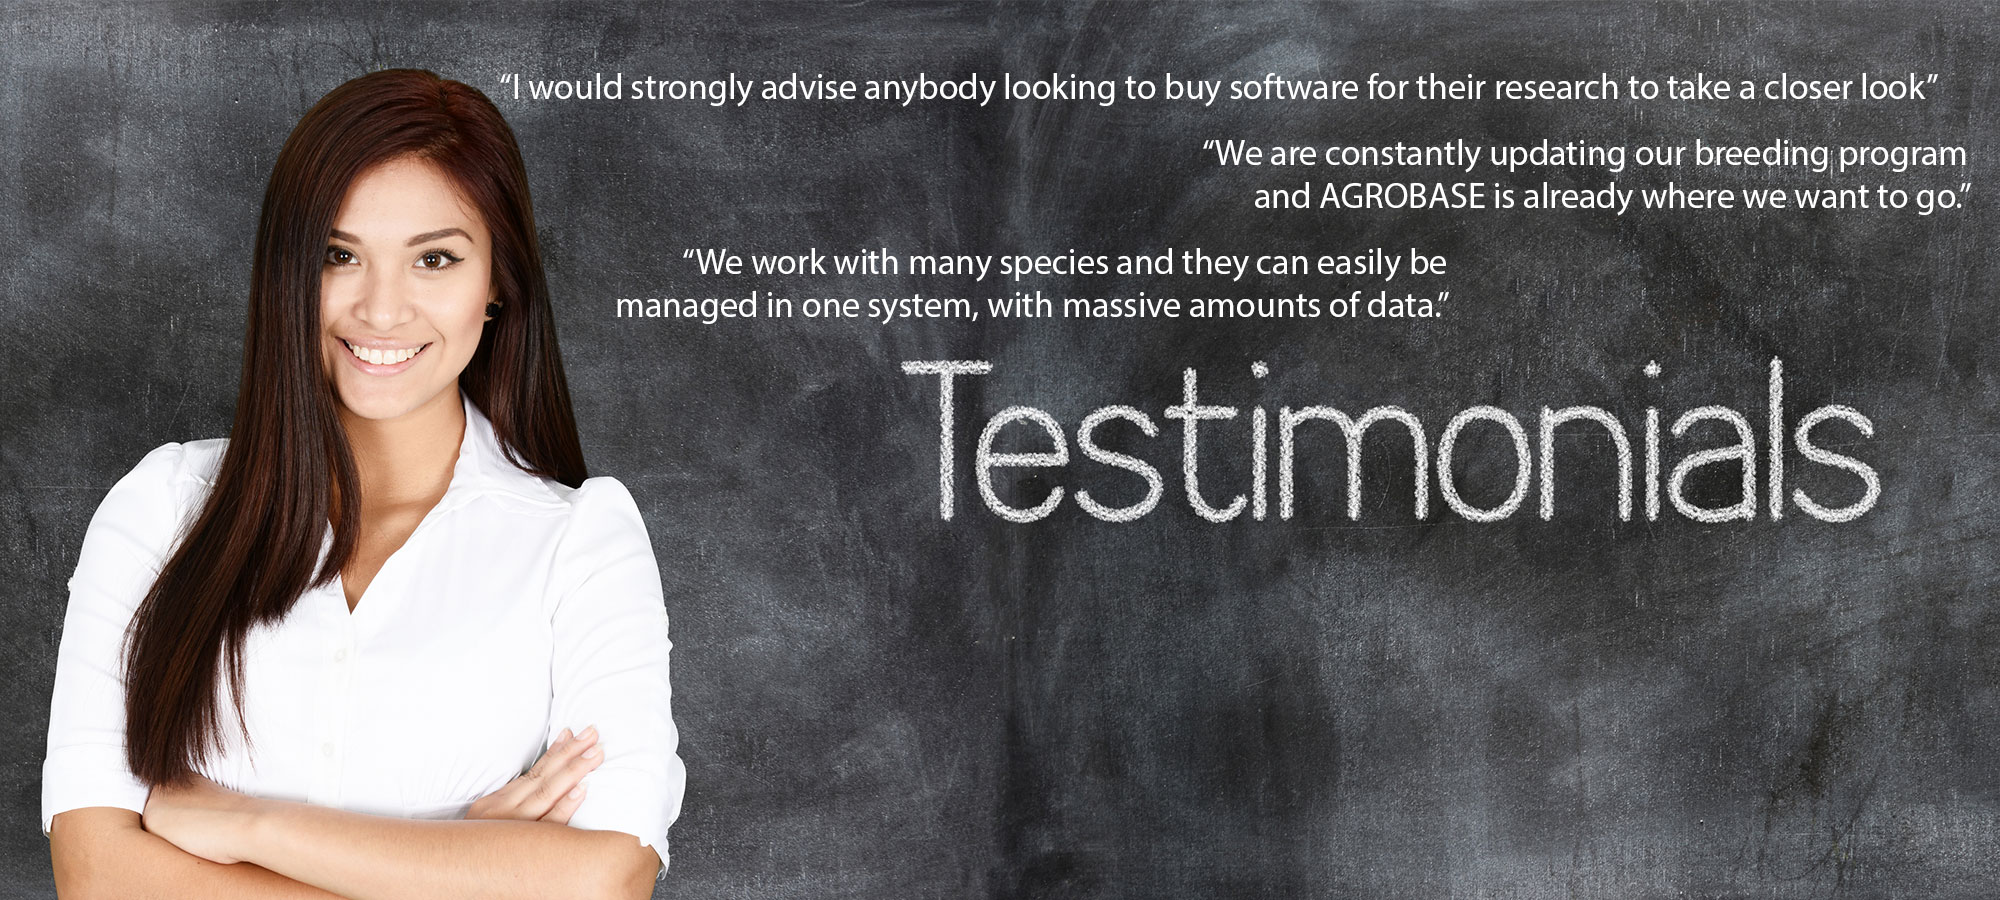 Hear what our clients say about our software